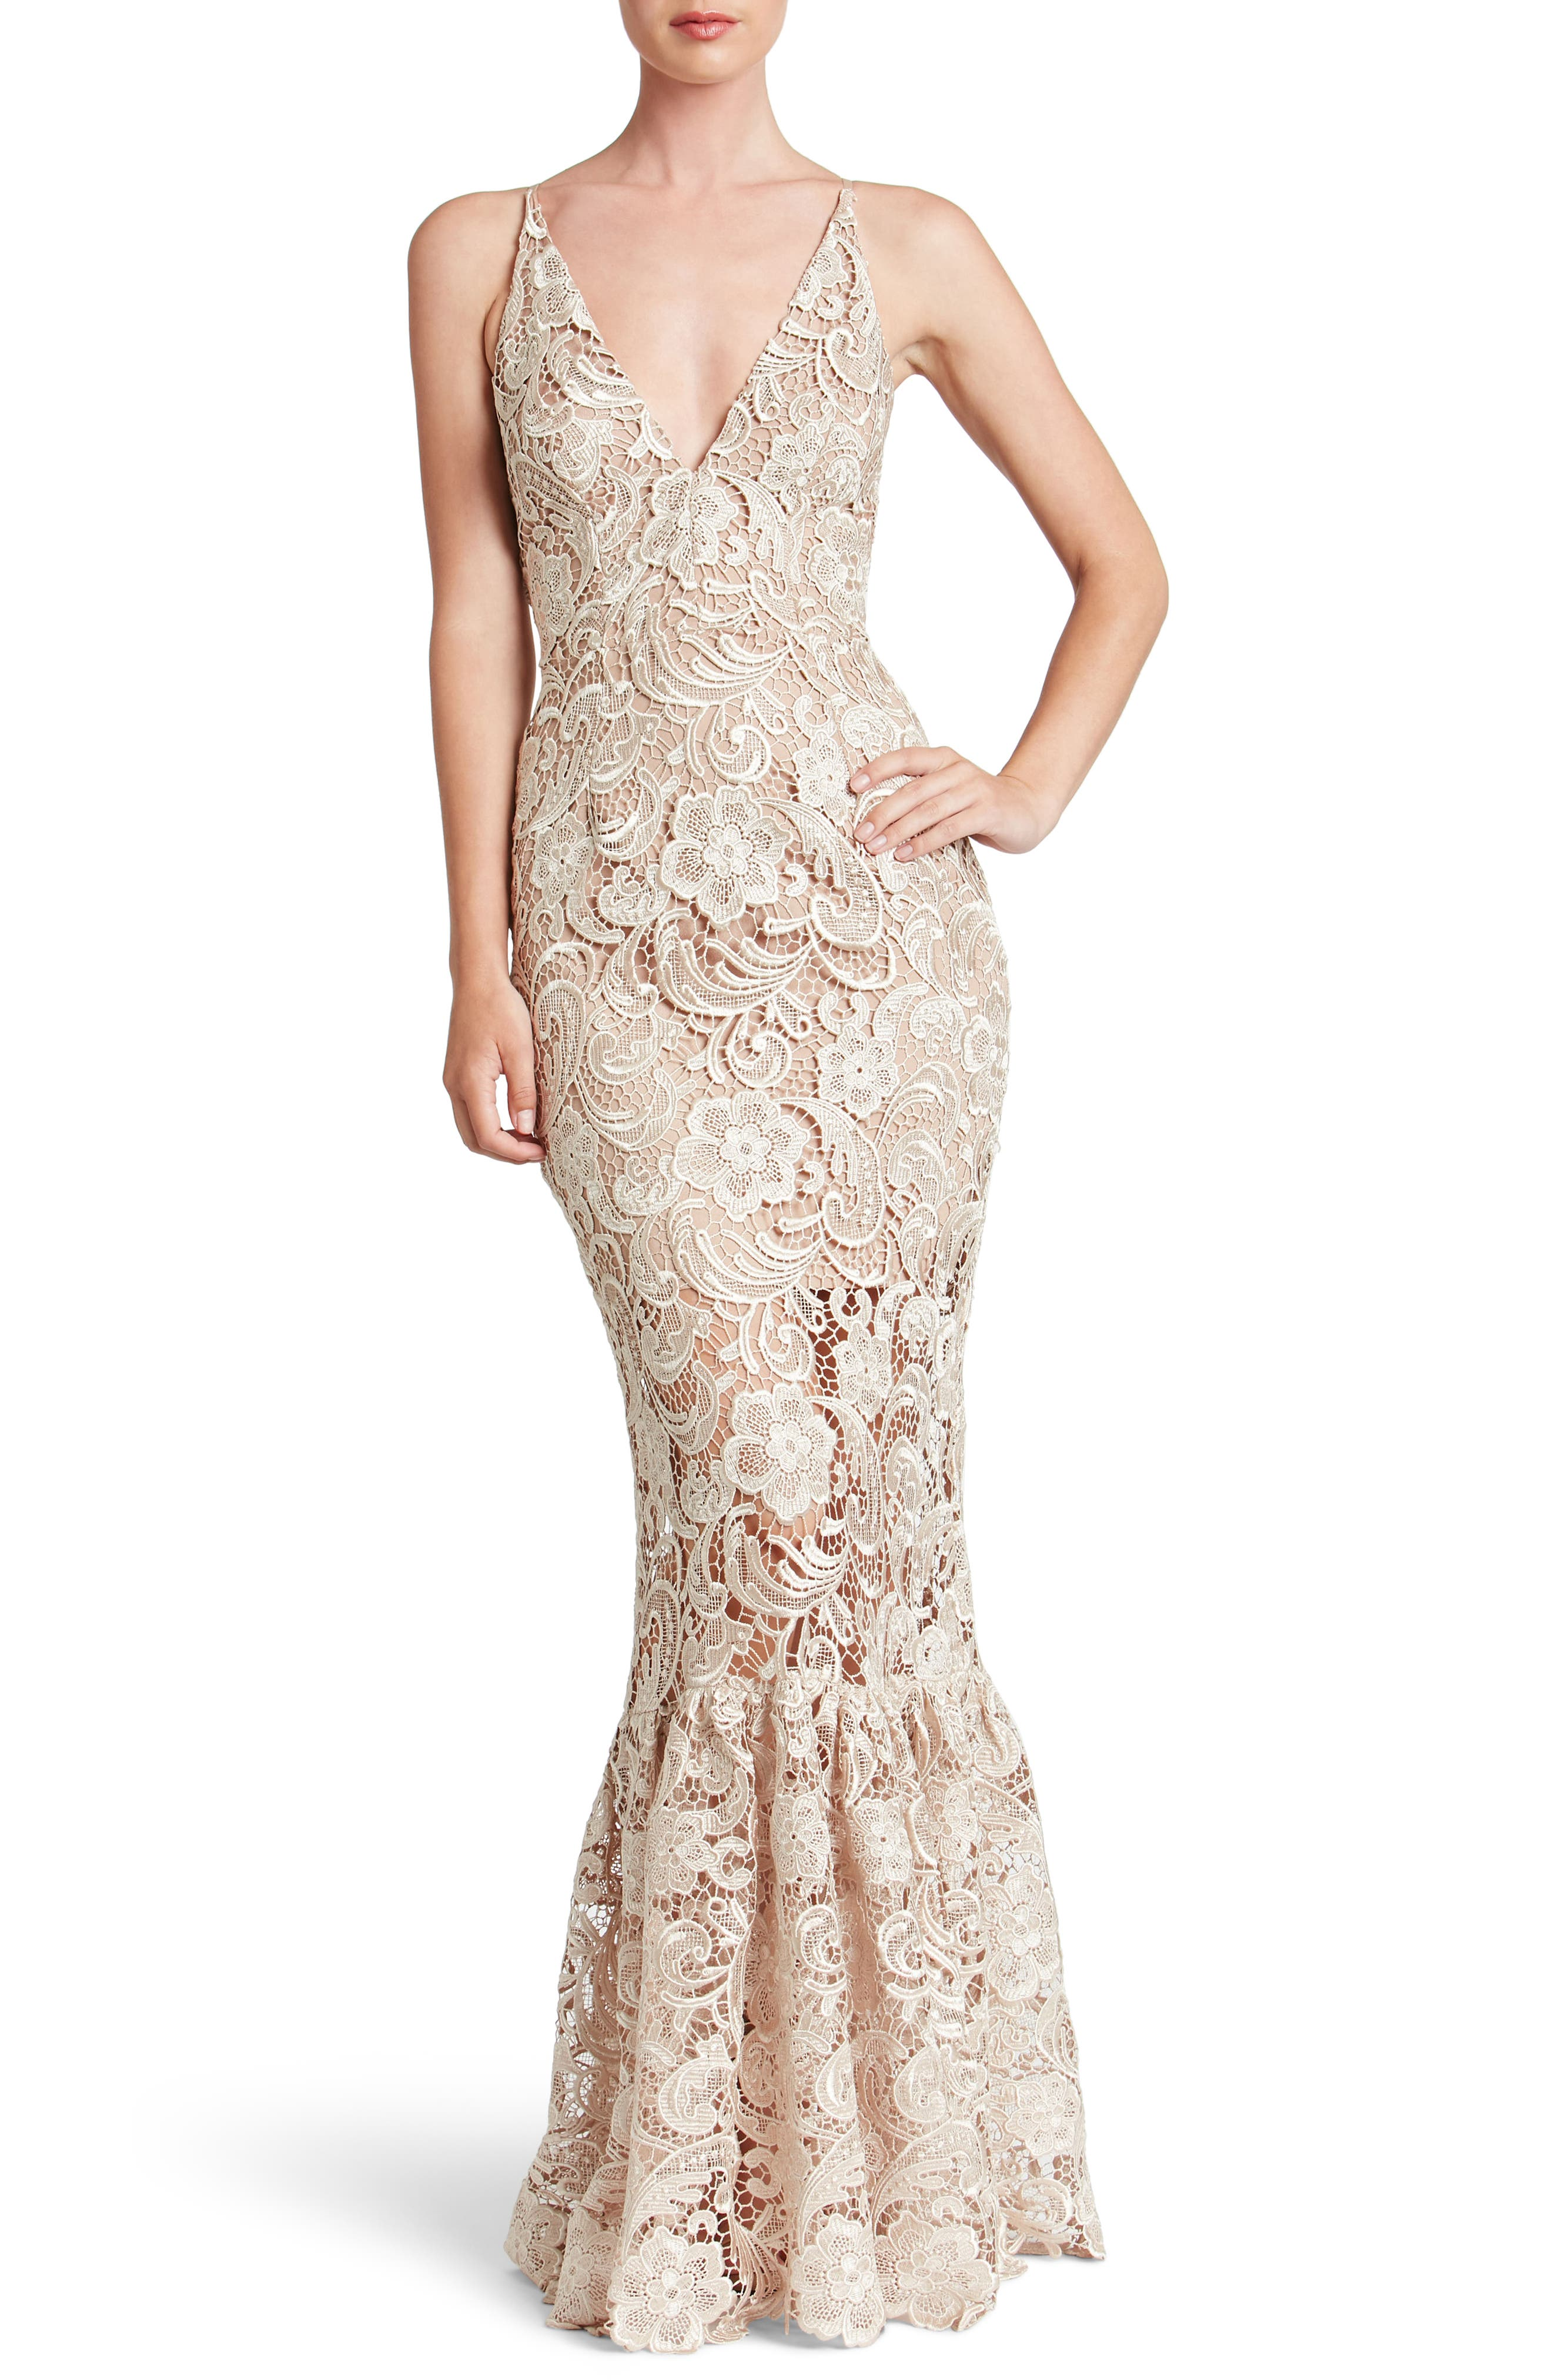 Bridesmaid wedding party dresses nordstrom dress the population sophia crochet lace mermaid gown ombrellifo Gallery